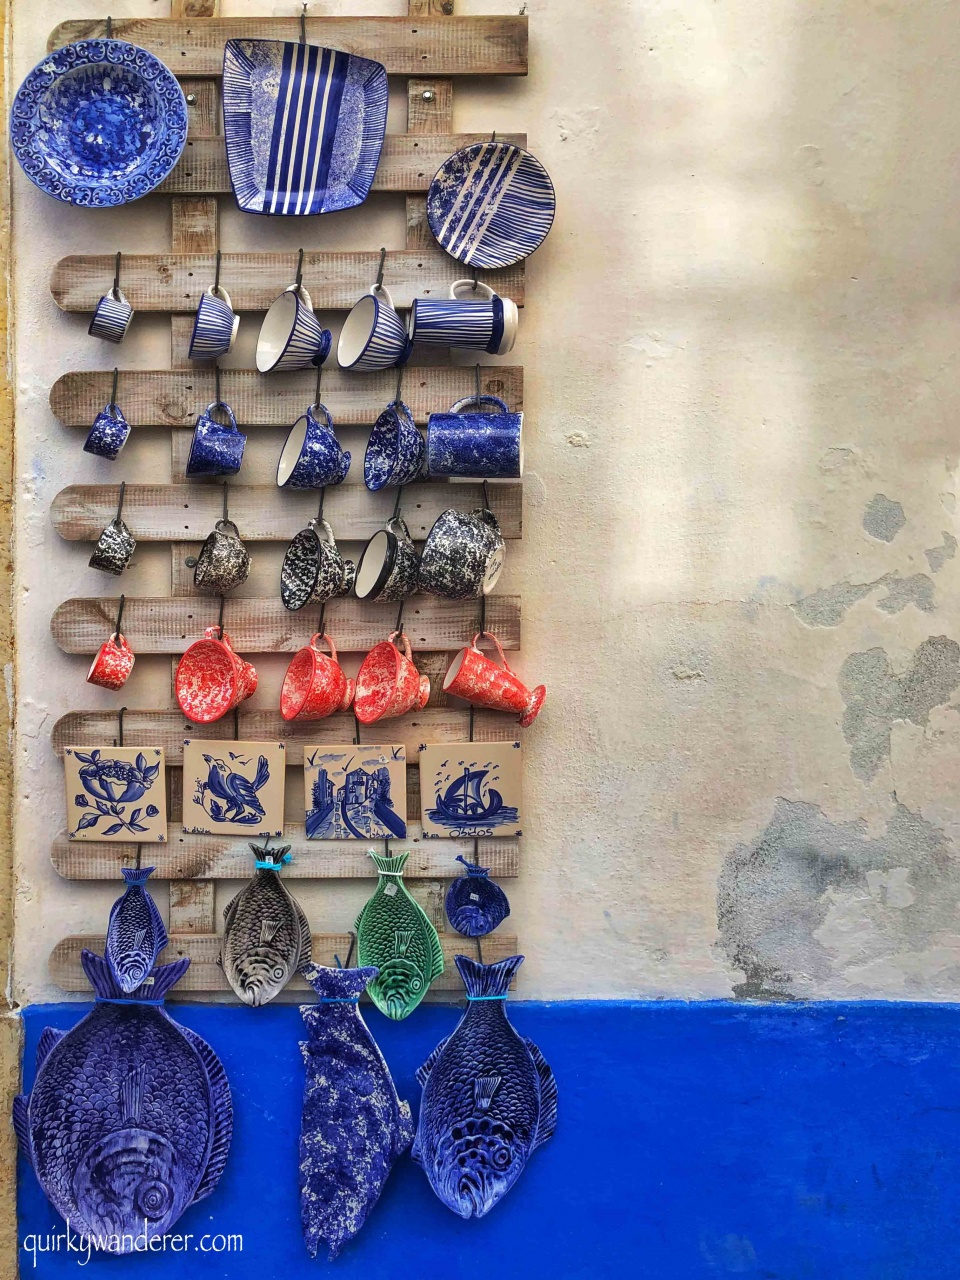 shopping in portugal ceramic products